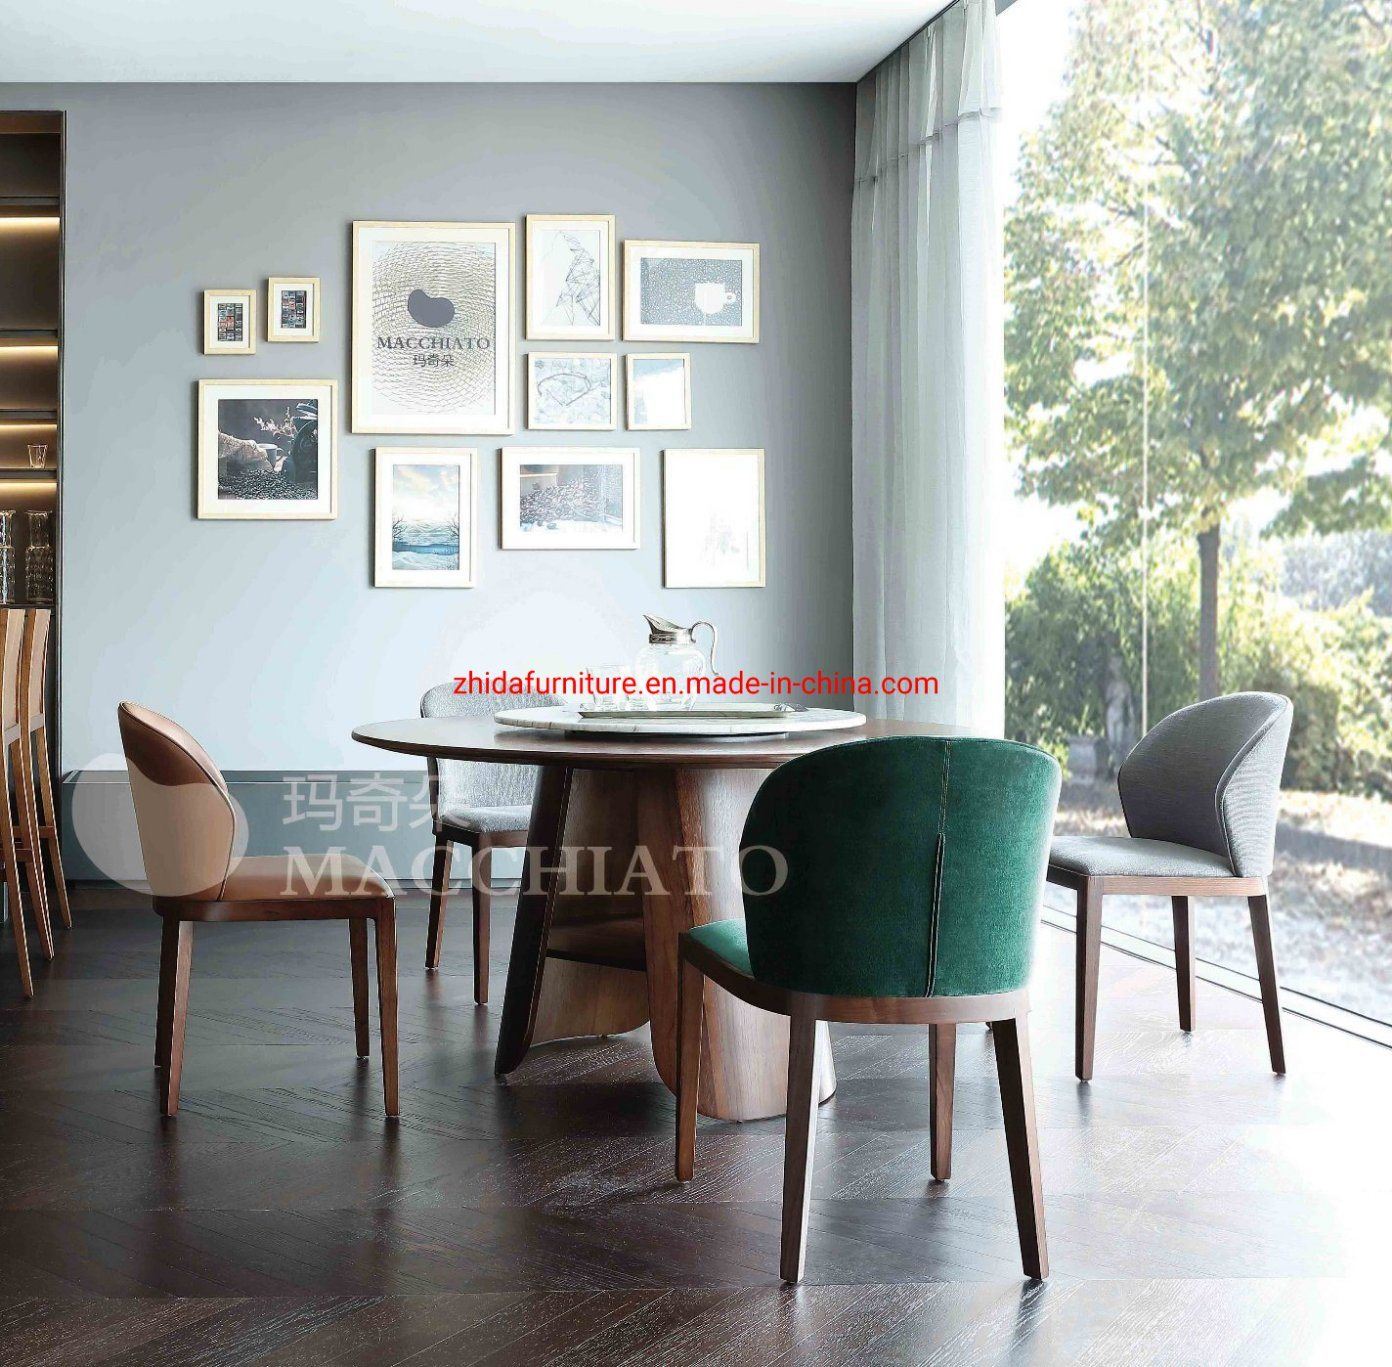 China Modern Home Living Room Furniture Wooden Walnut Dining Table China Dining Table Wooden Table